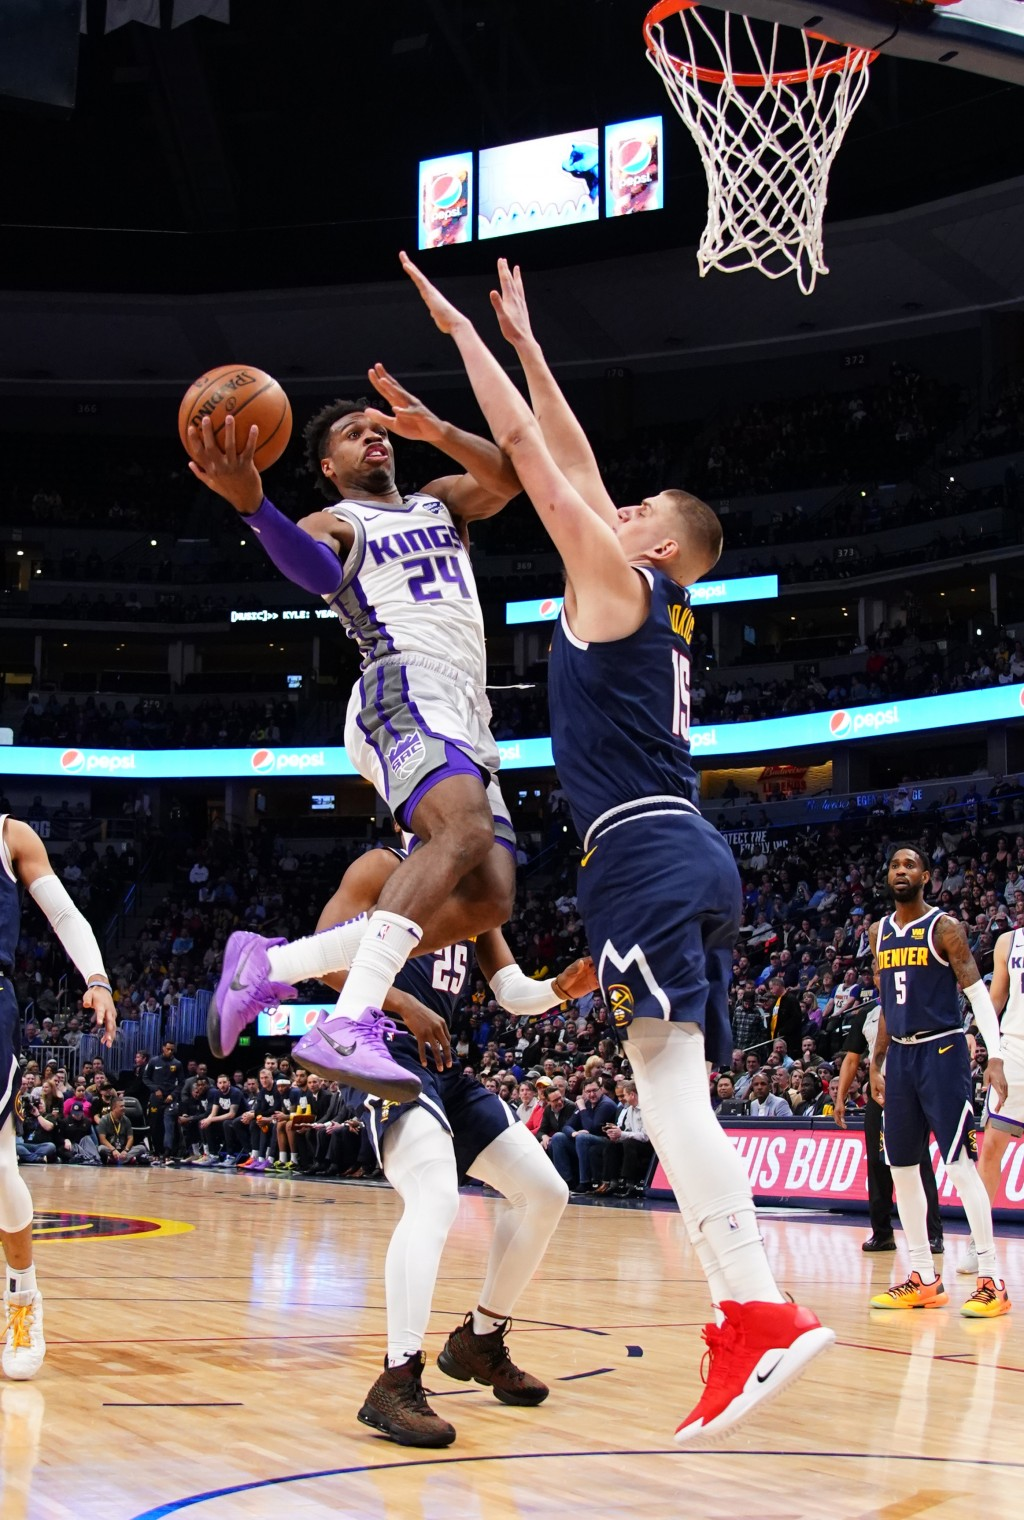 Sacramento Kings guard Buddy Hield (24) goes up for a shot against Denver Nuggets center Nikola Jokic (15) during the first half of an NBA basketball